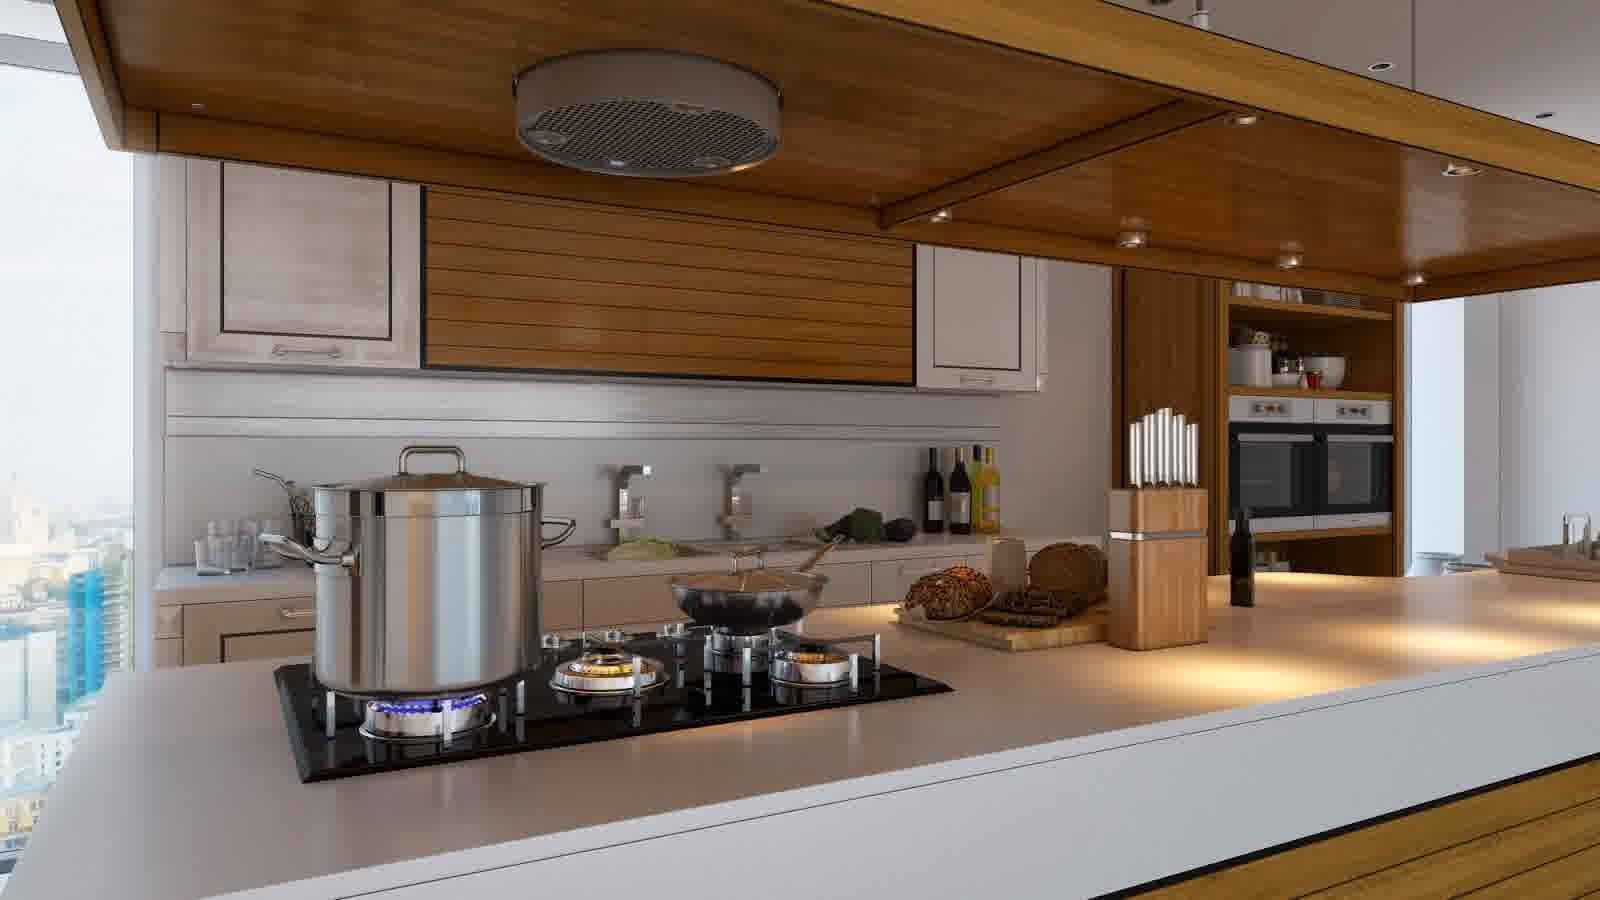 Contemporary Kitchen Interior with ornamental lamps below showcase